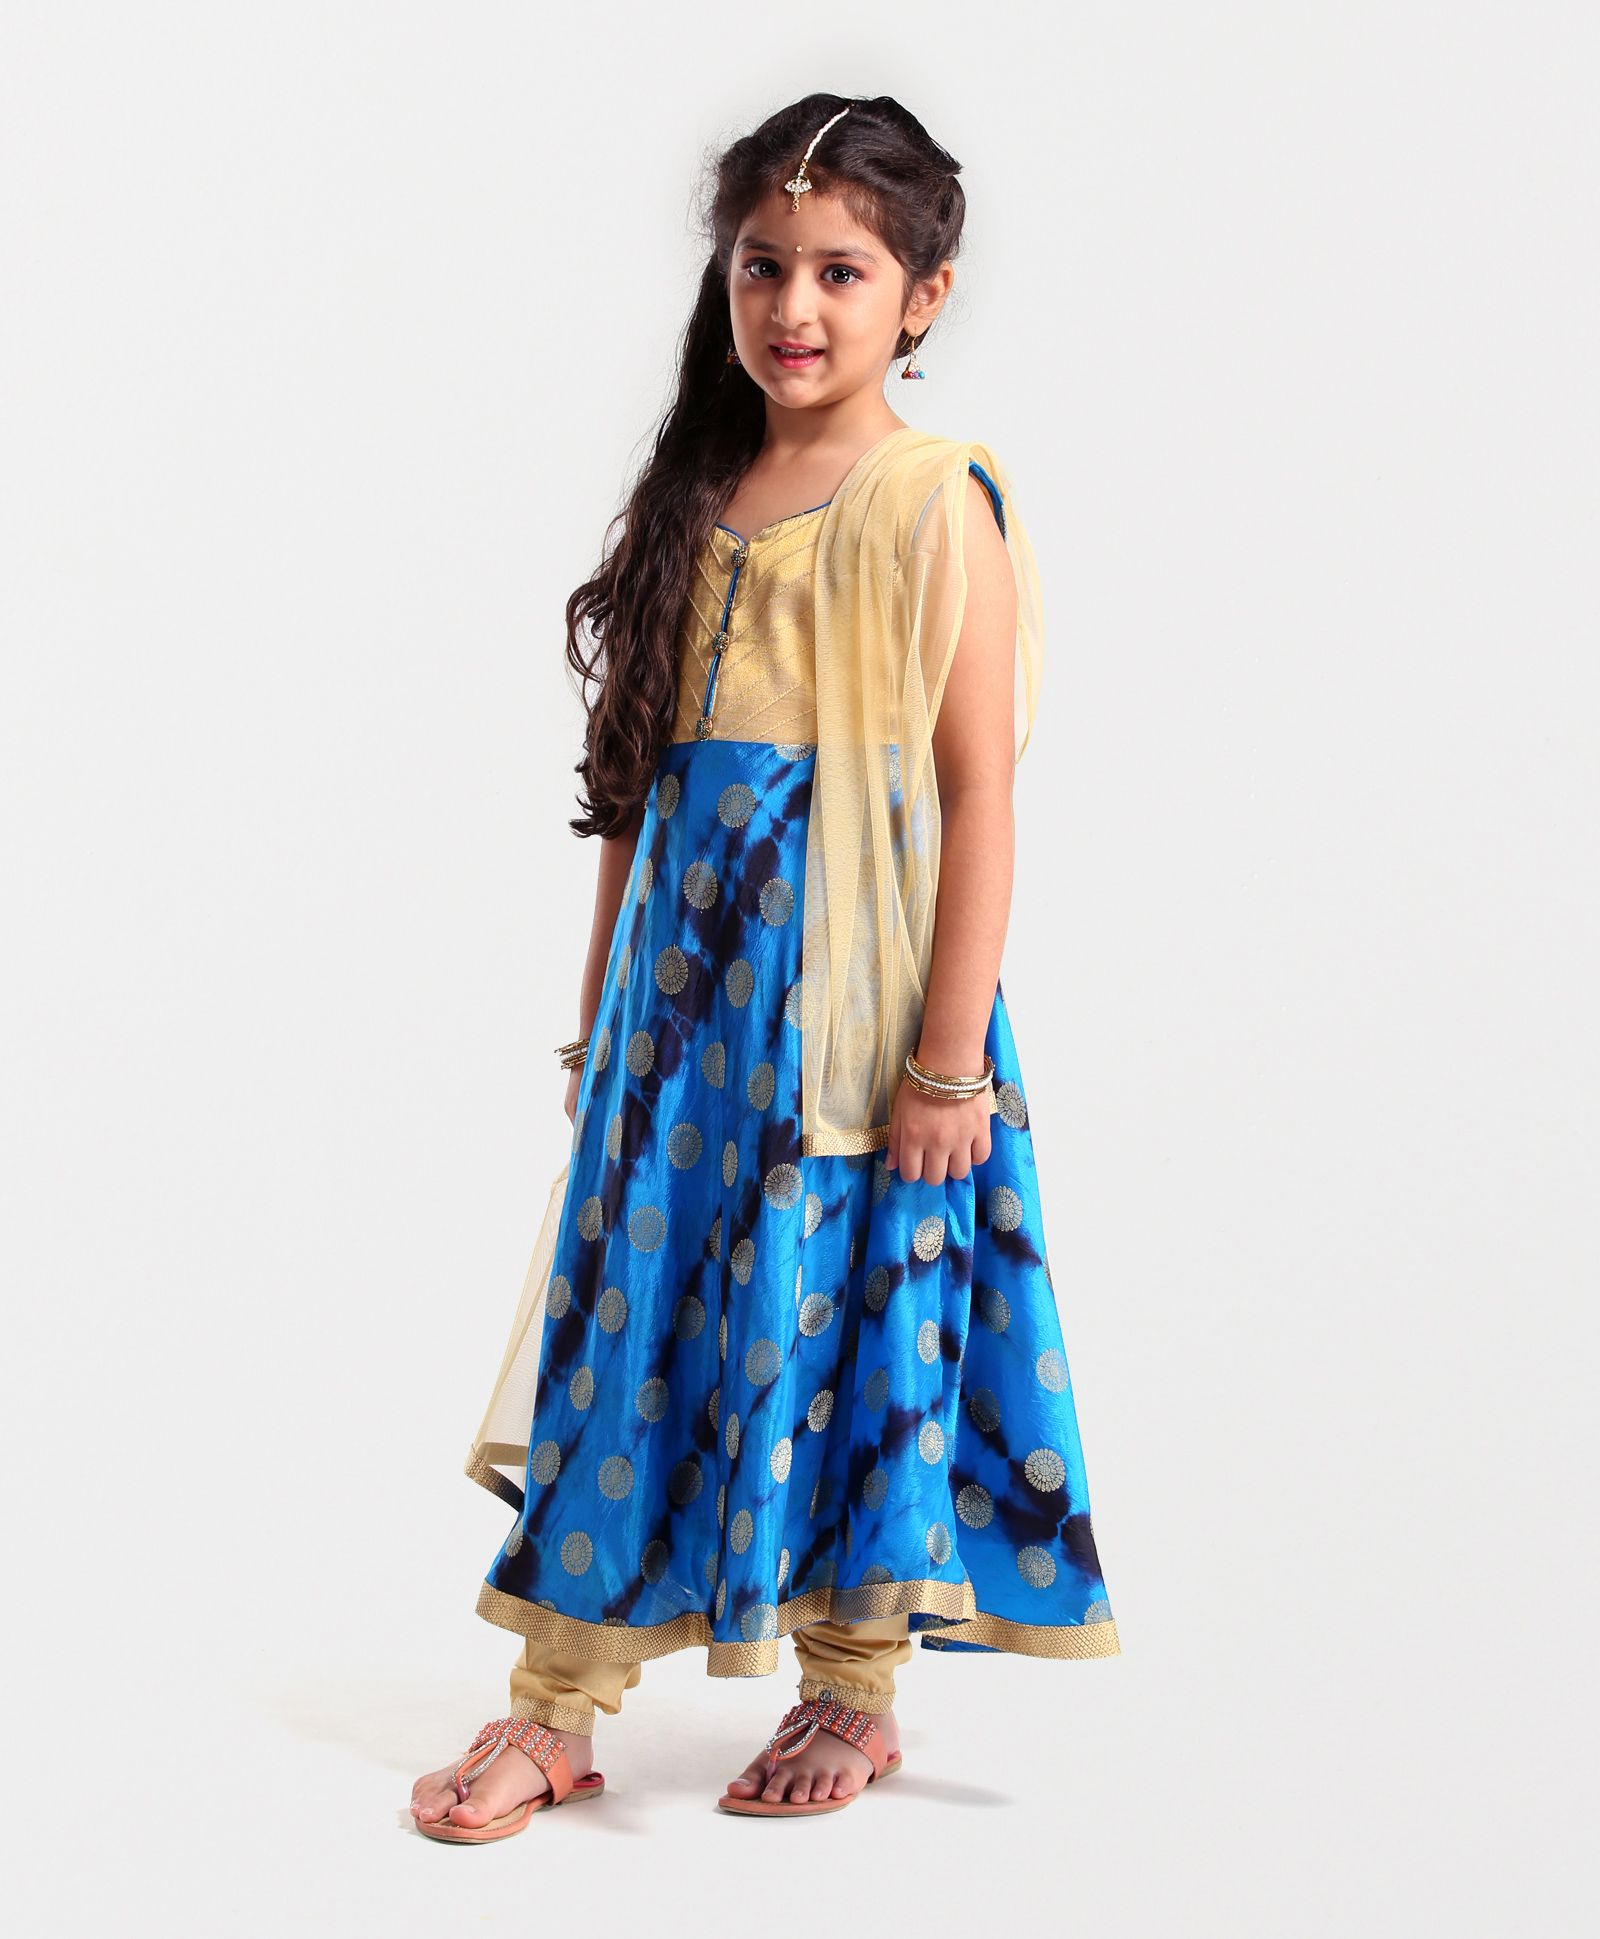 Babyhug Sleeveless Kurti And Salwaar With Dupatta Embroidered Design - Blue